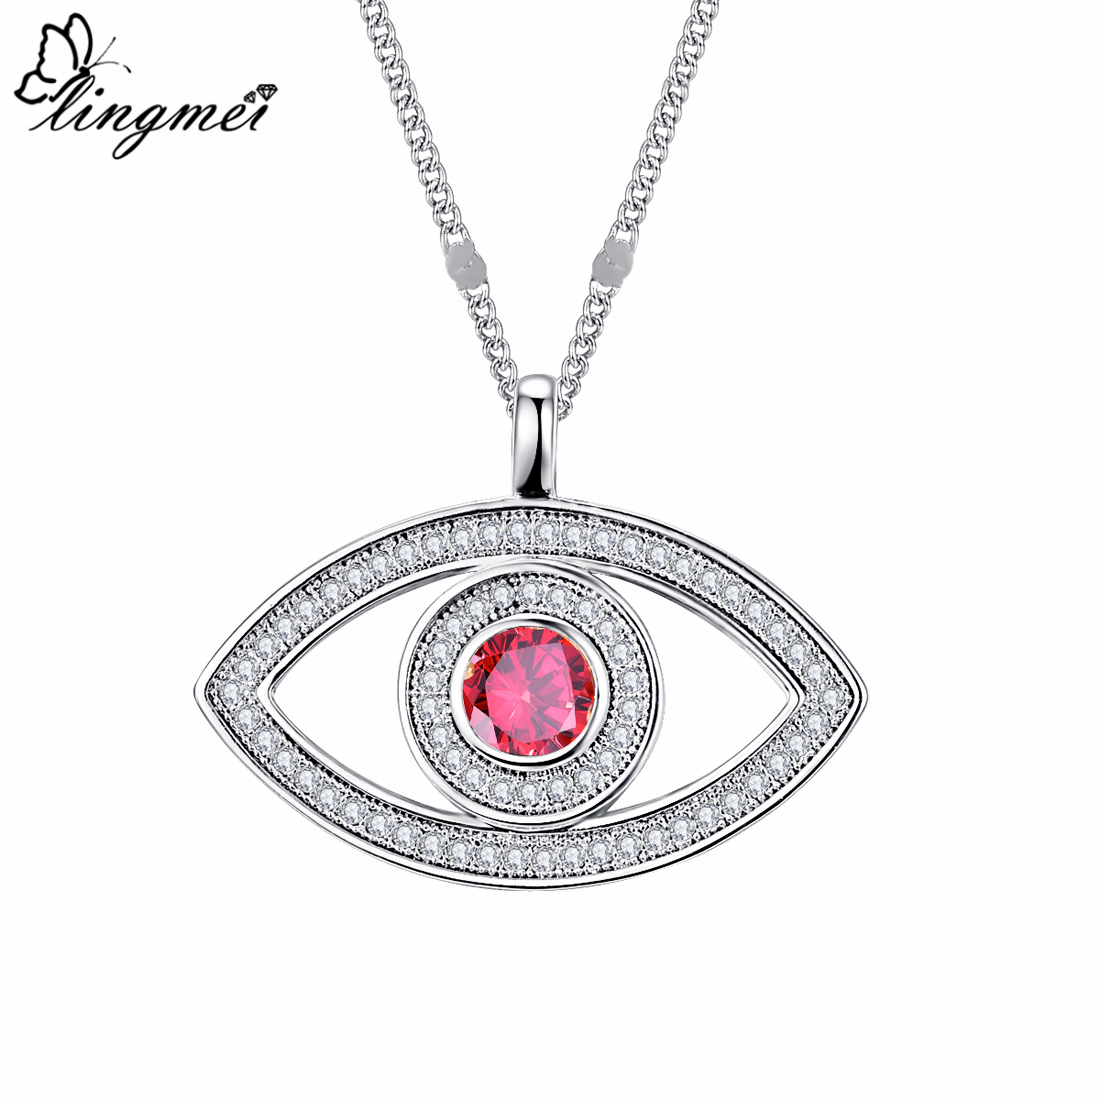 Lingmei Eyes Shaped Gorgeous Wedding Round Cut Red & Purple White Zircon Silver Pendant Necklace With Chain Jewelry Gifts